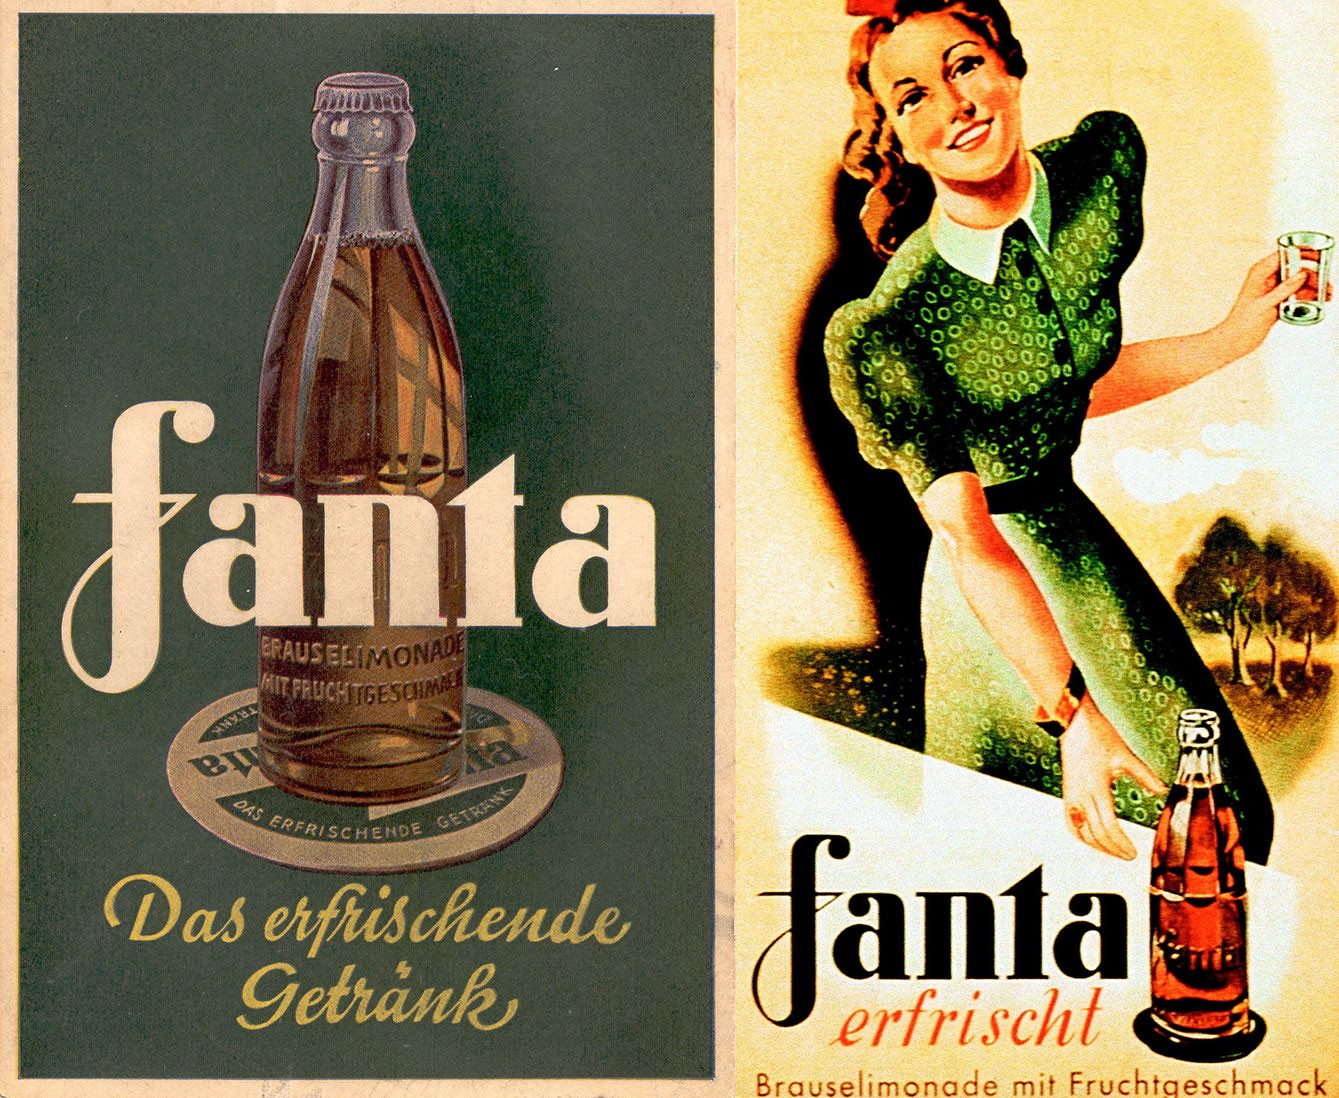 Coca-Cola collaborated with the Nazis in the 1930s, and Fanta is the